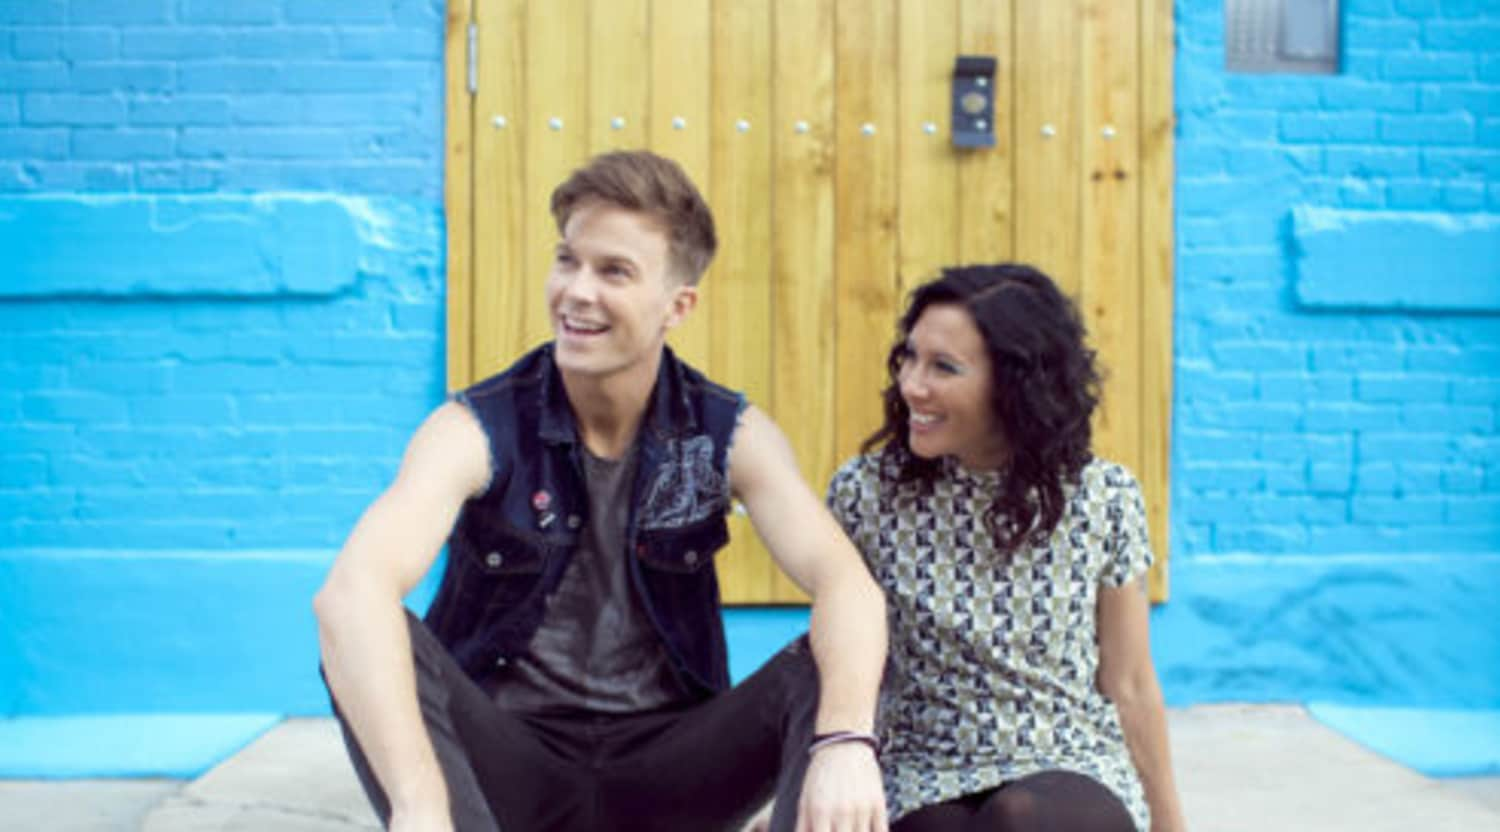 Matt och Kim dating ansluta Kelly eller Katy